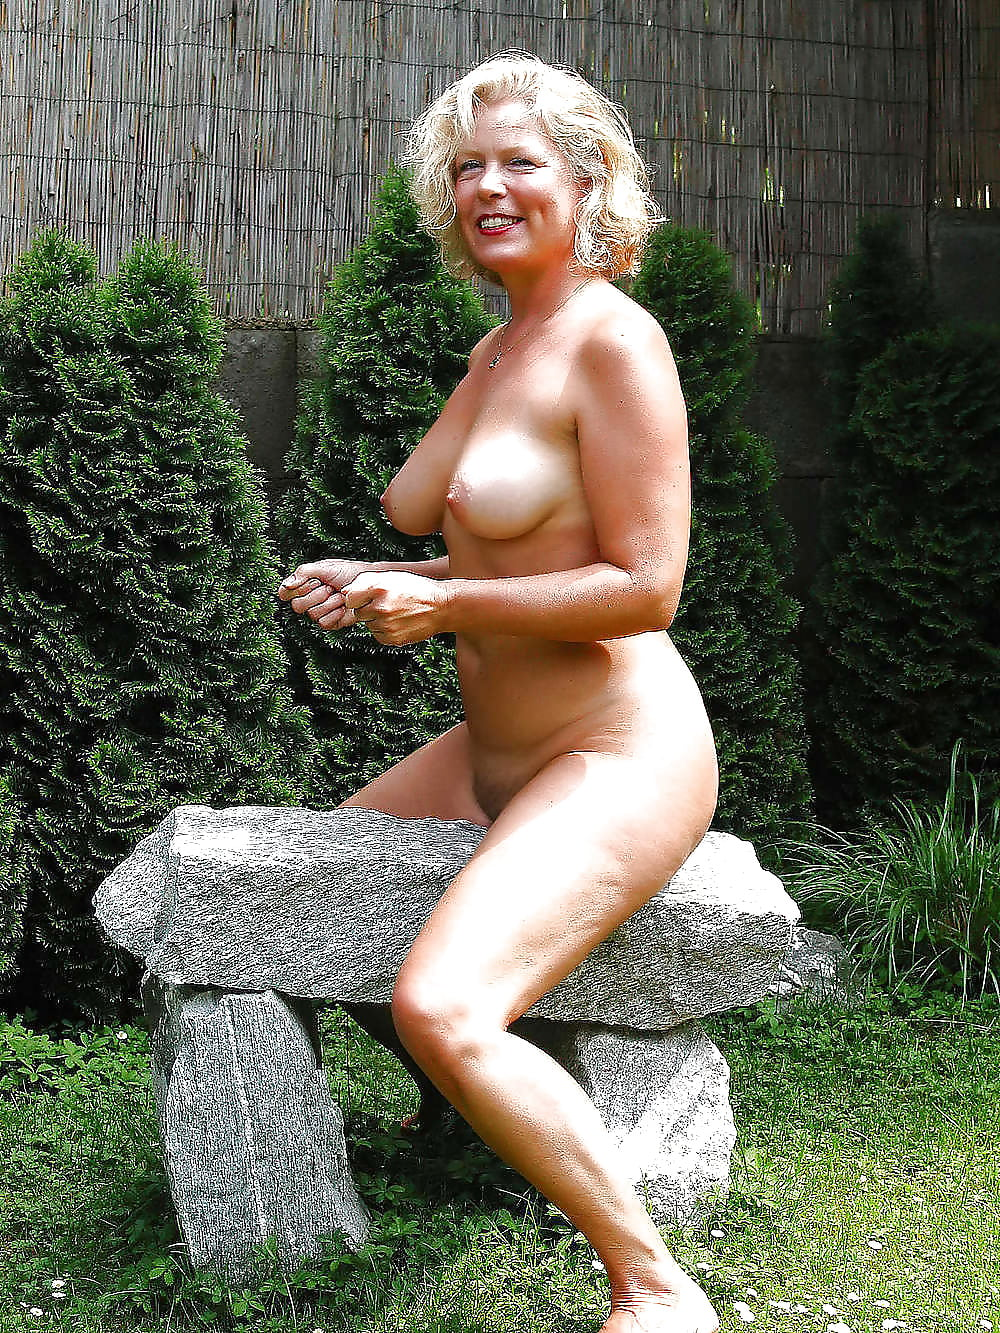 boobs-naked-mom-in-the-garden-amateur-vagina-amber